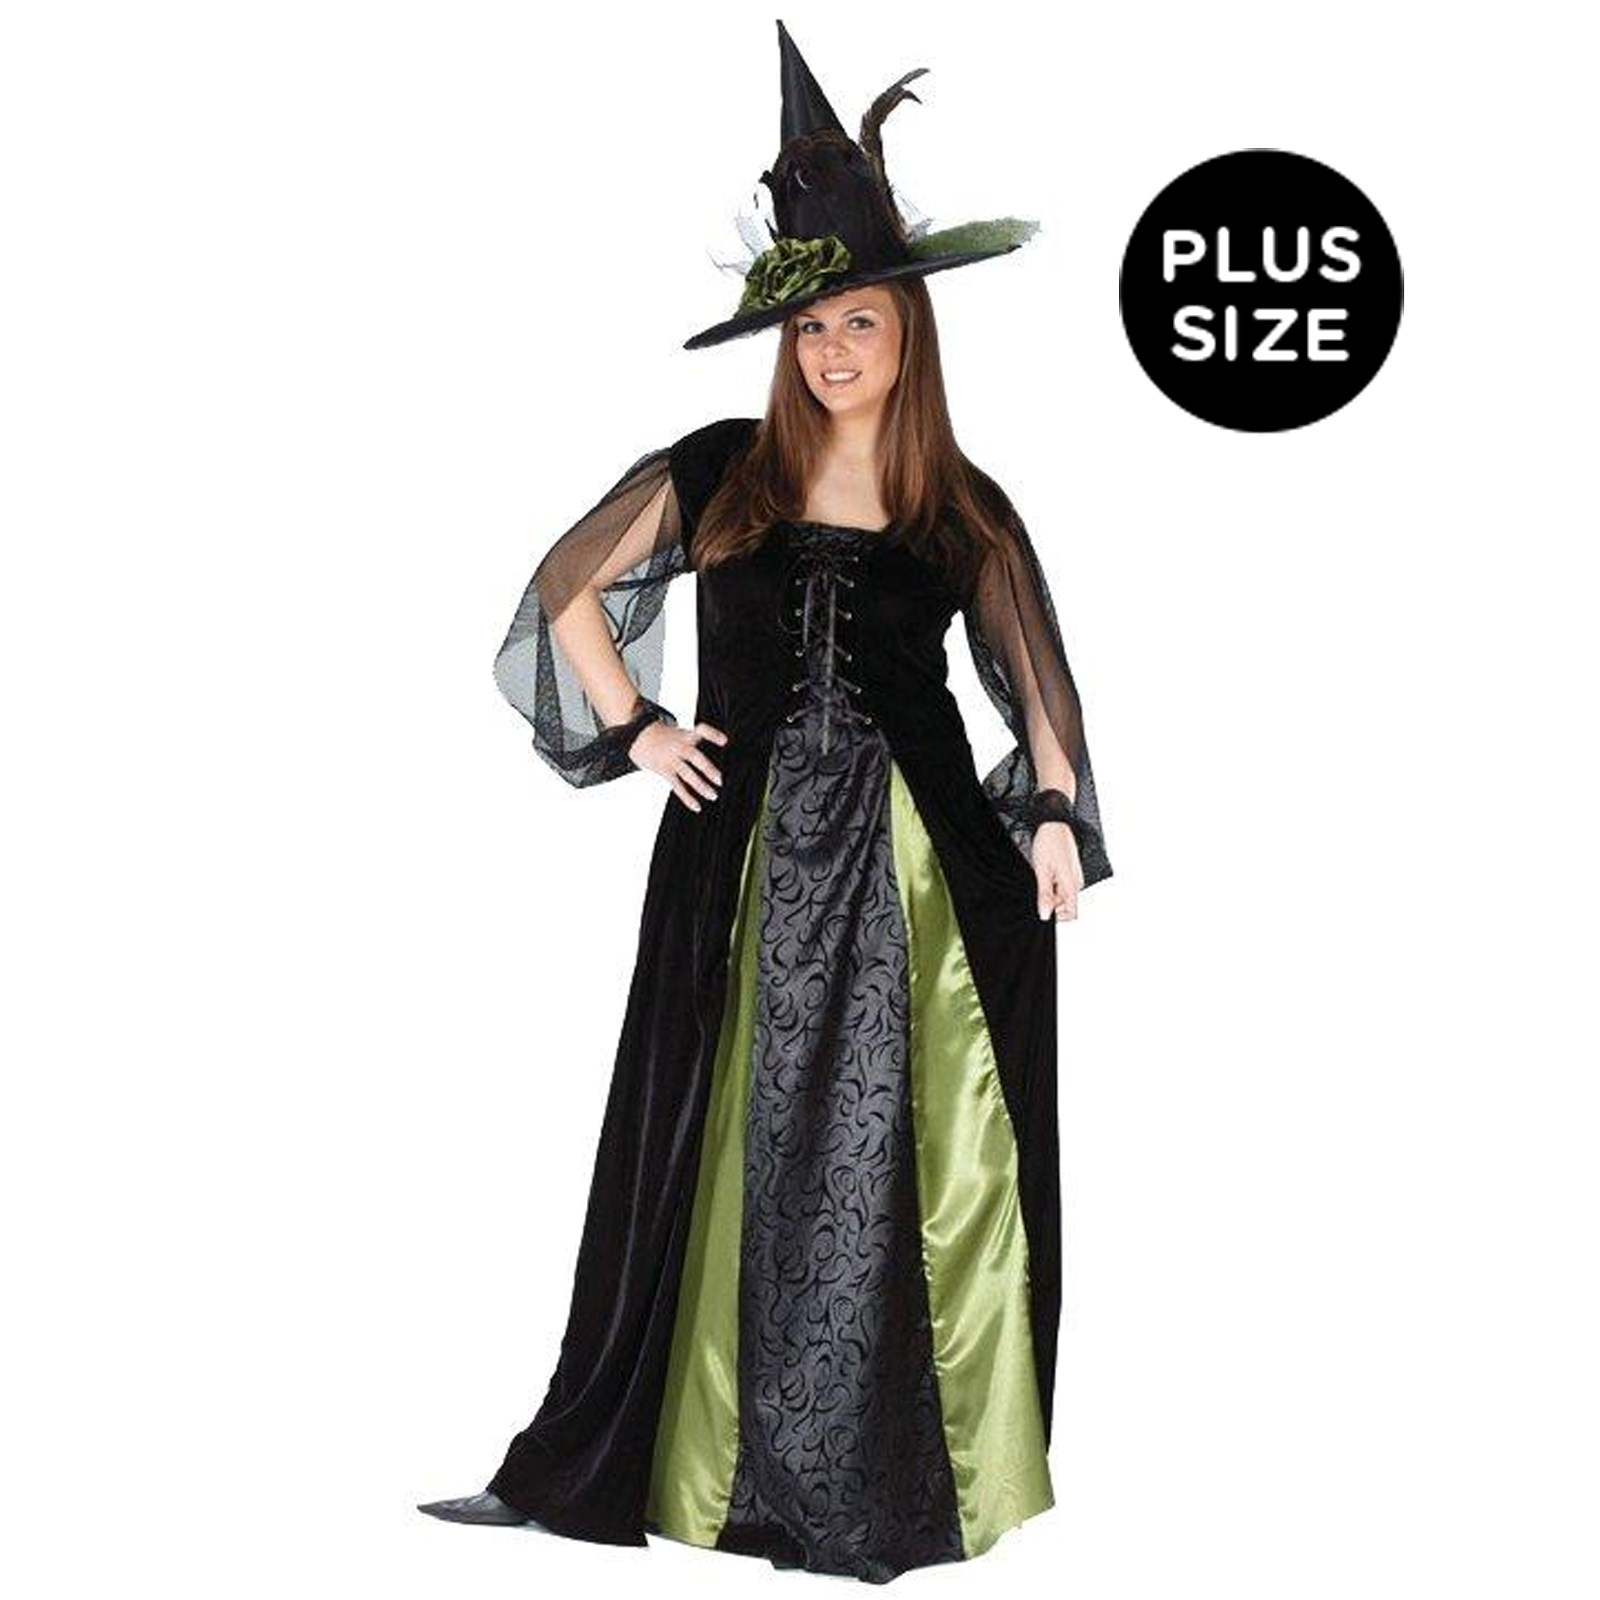 Goth Maiden Witch Adult Plus Costume | BuyCostumes.com